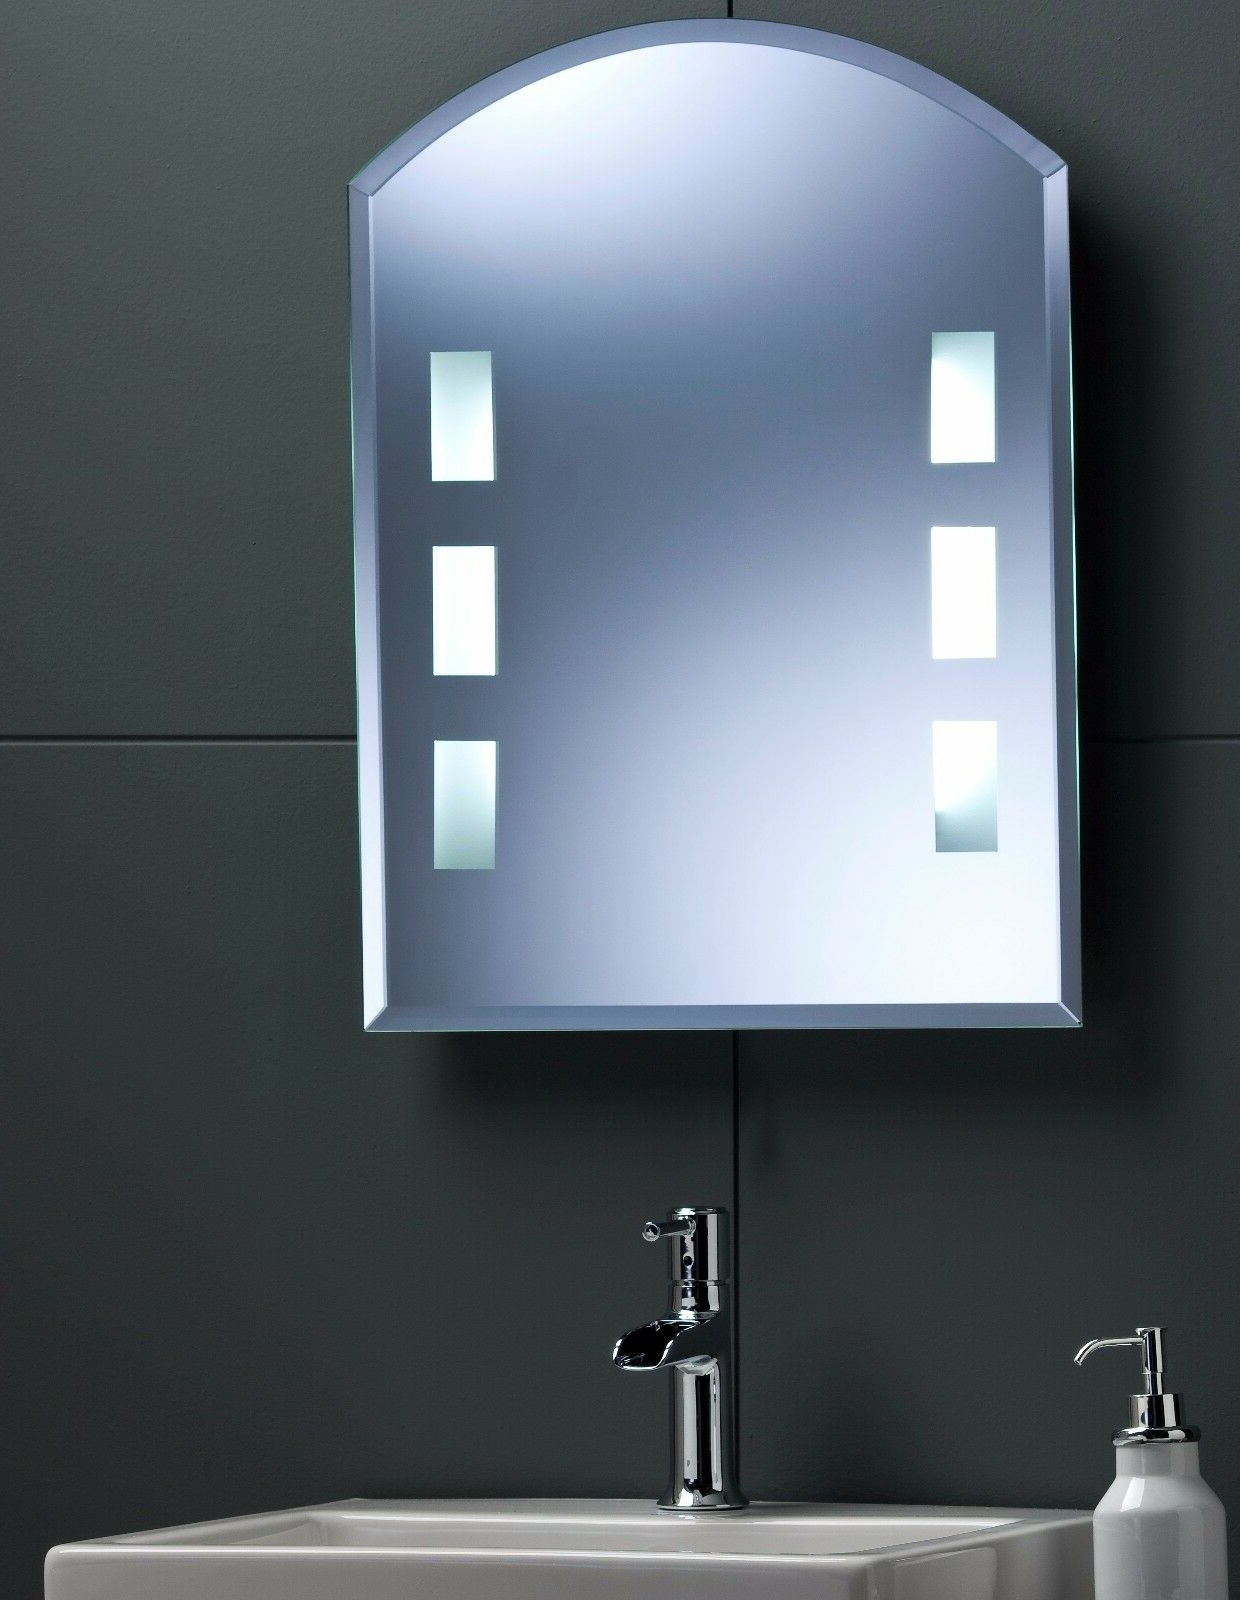 Details About Illuminated Arch Bathroom Wall Mirror, Back Lit Led'S, Rocker Switch 60X45Cm Neue Design Led Illuminated Bathroom Mirror Cabinet